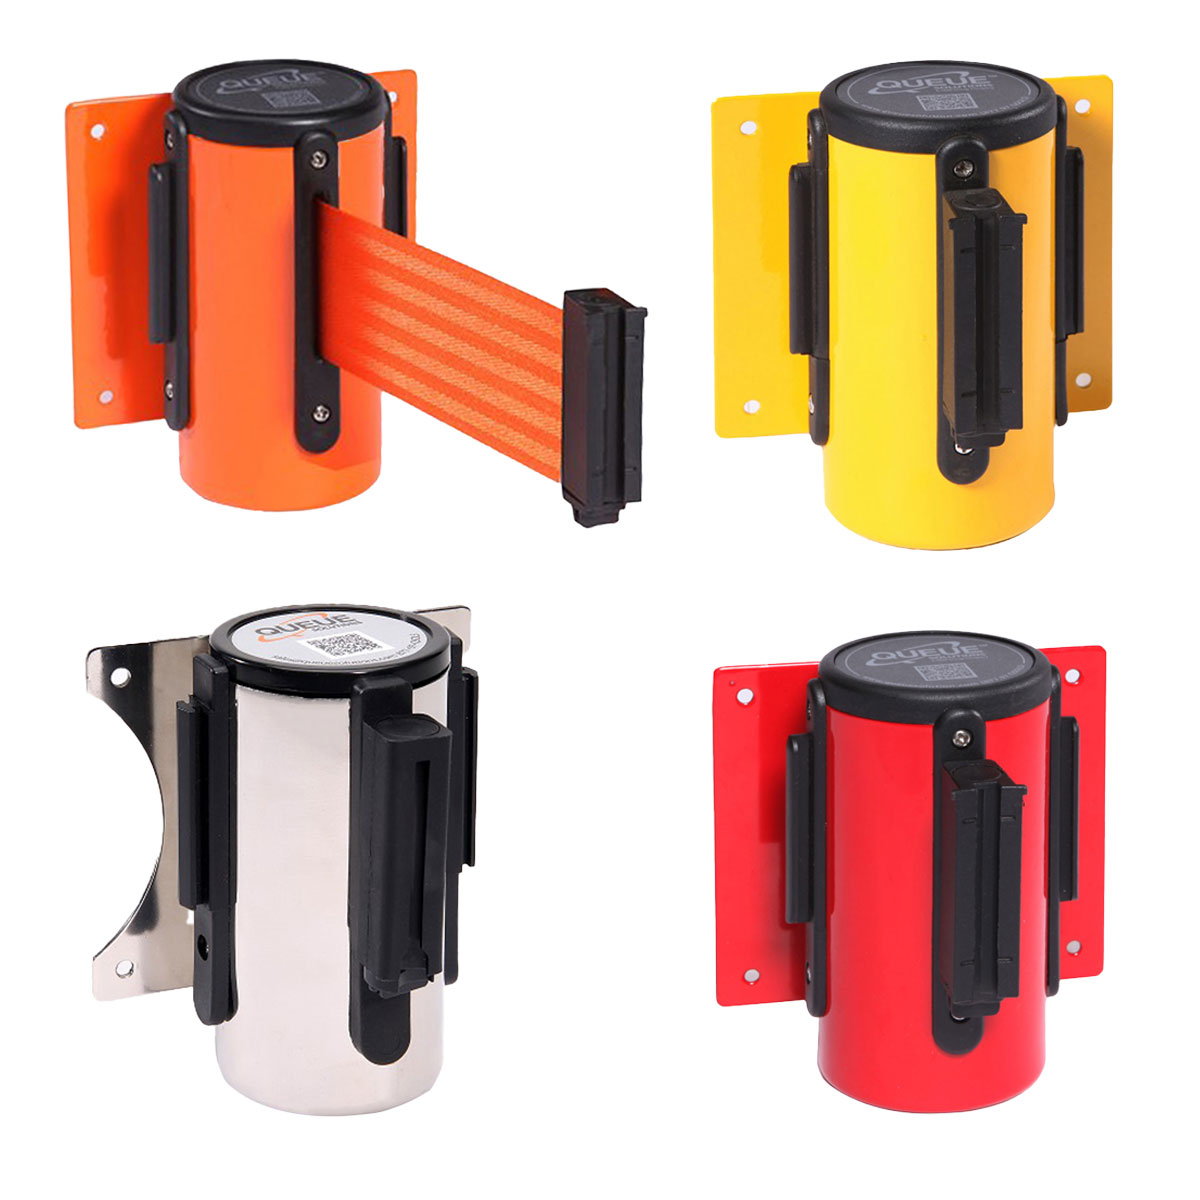 WallMaster Wall Mounted Retractable Barriers